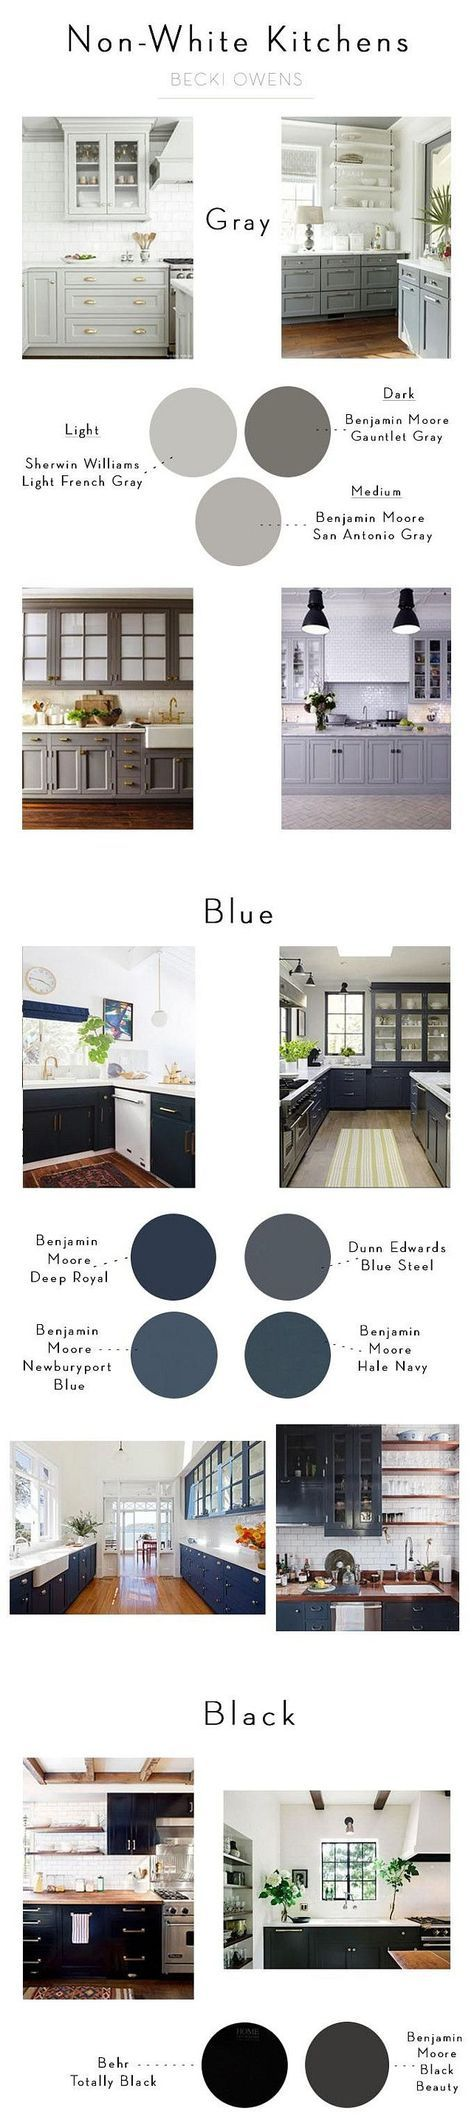 best patch house images on pinterest home ideas decorating